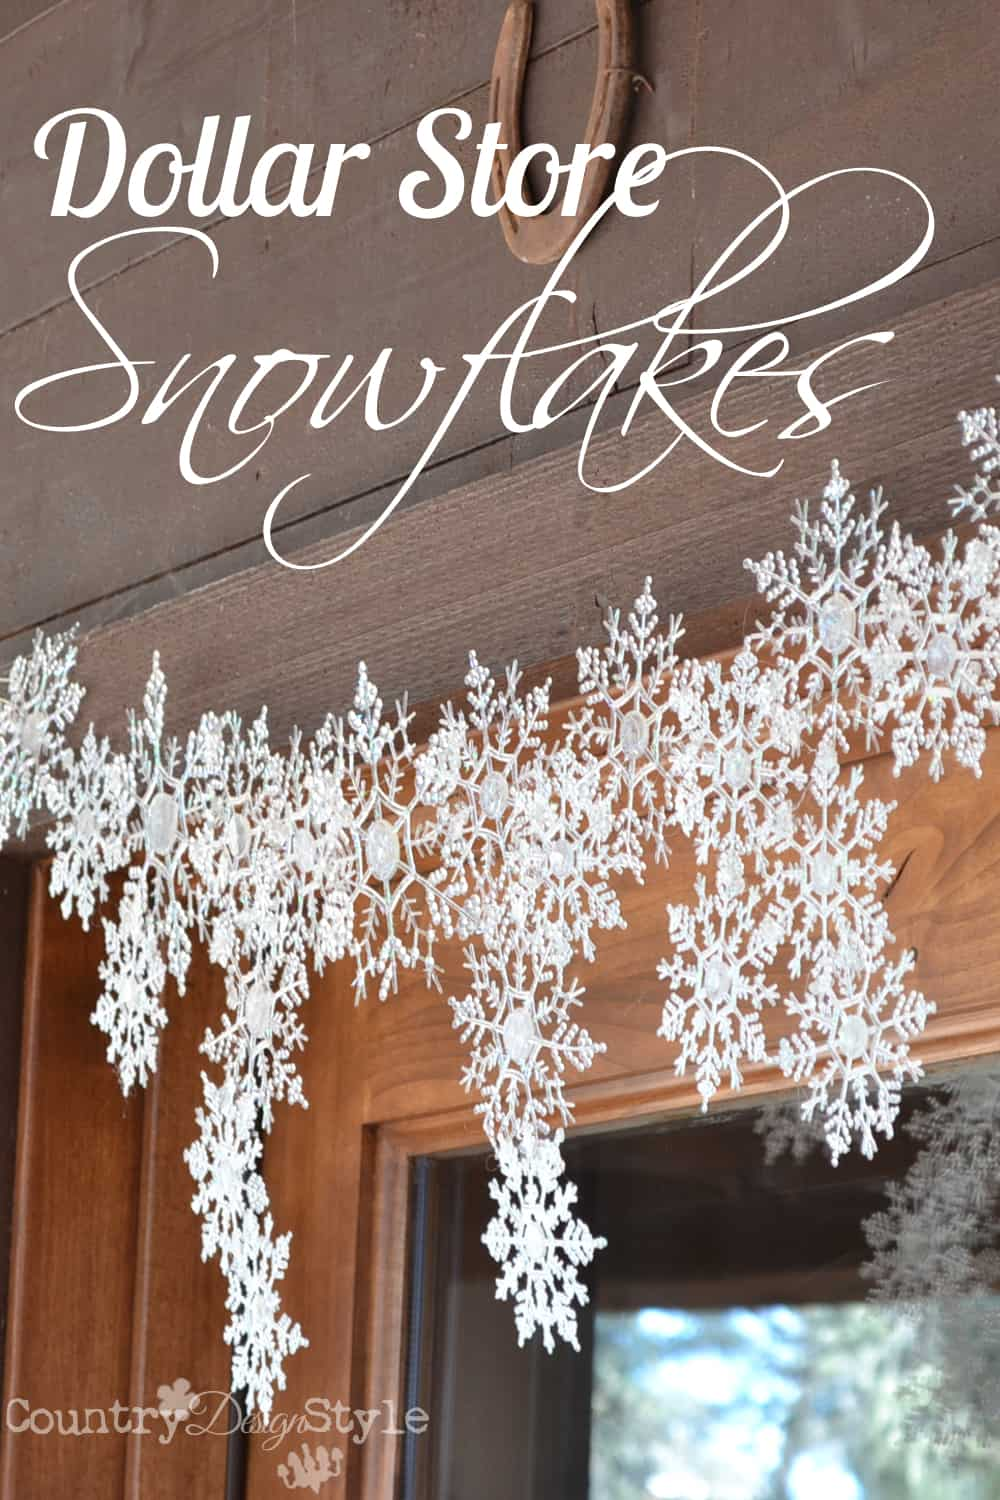 Hot glue and glitter dollar store snowflakes